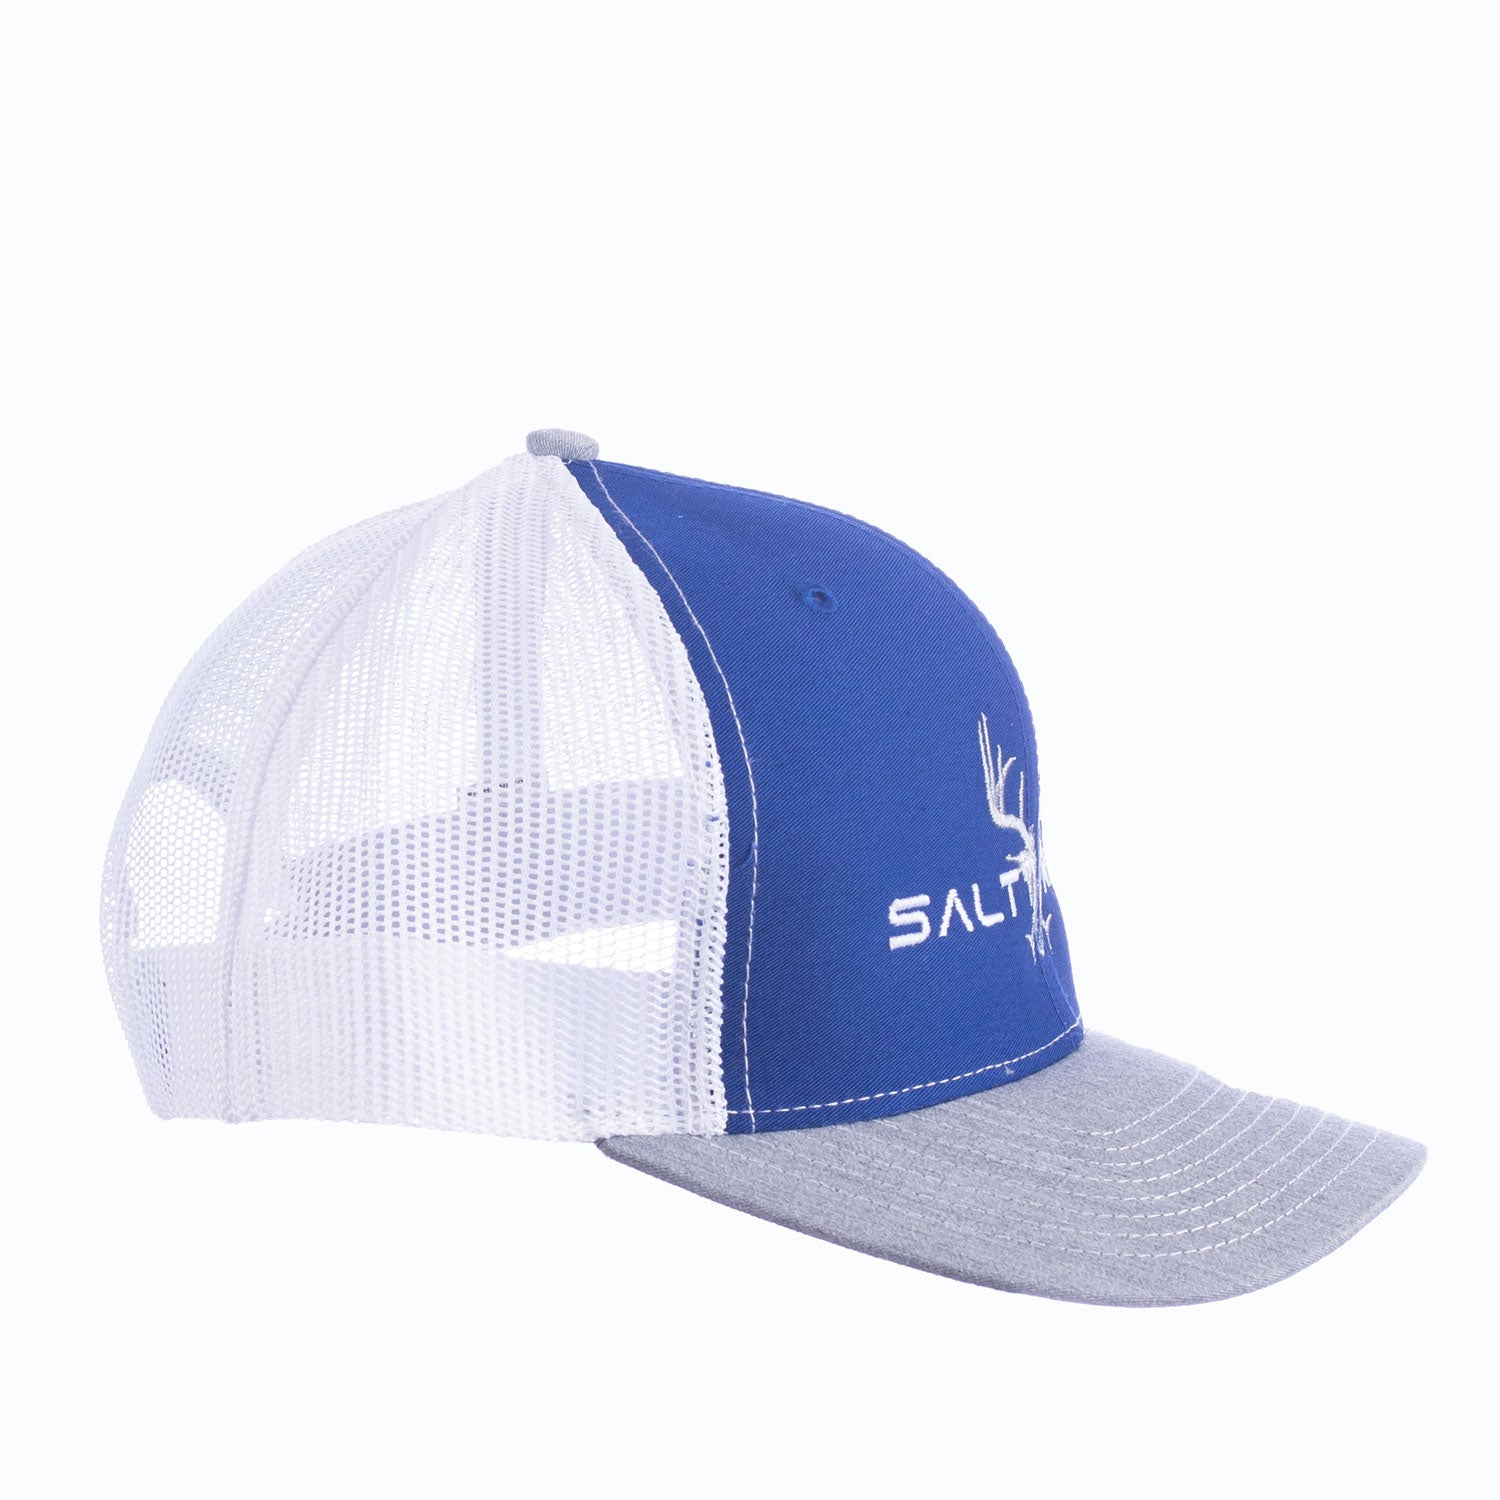 Gray/Blue/White Cap